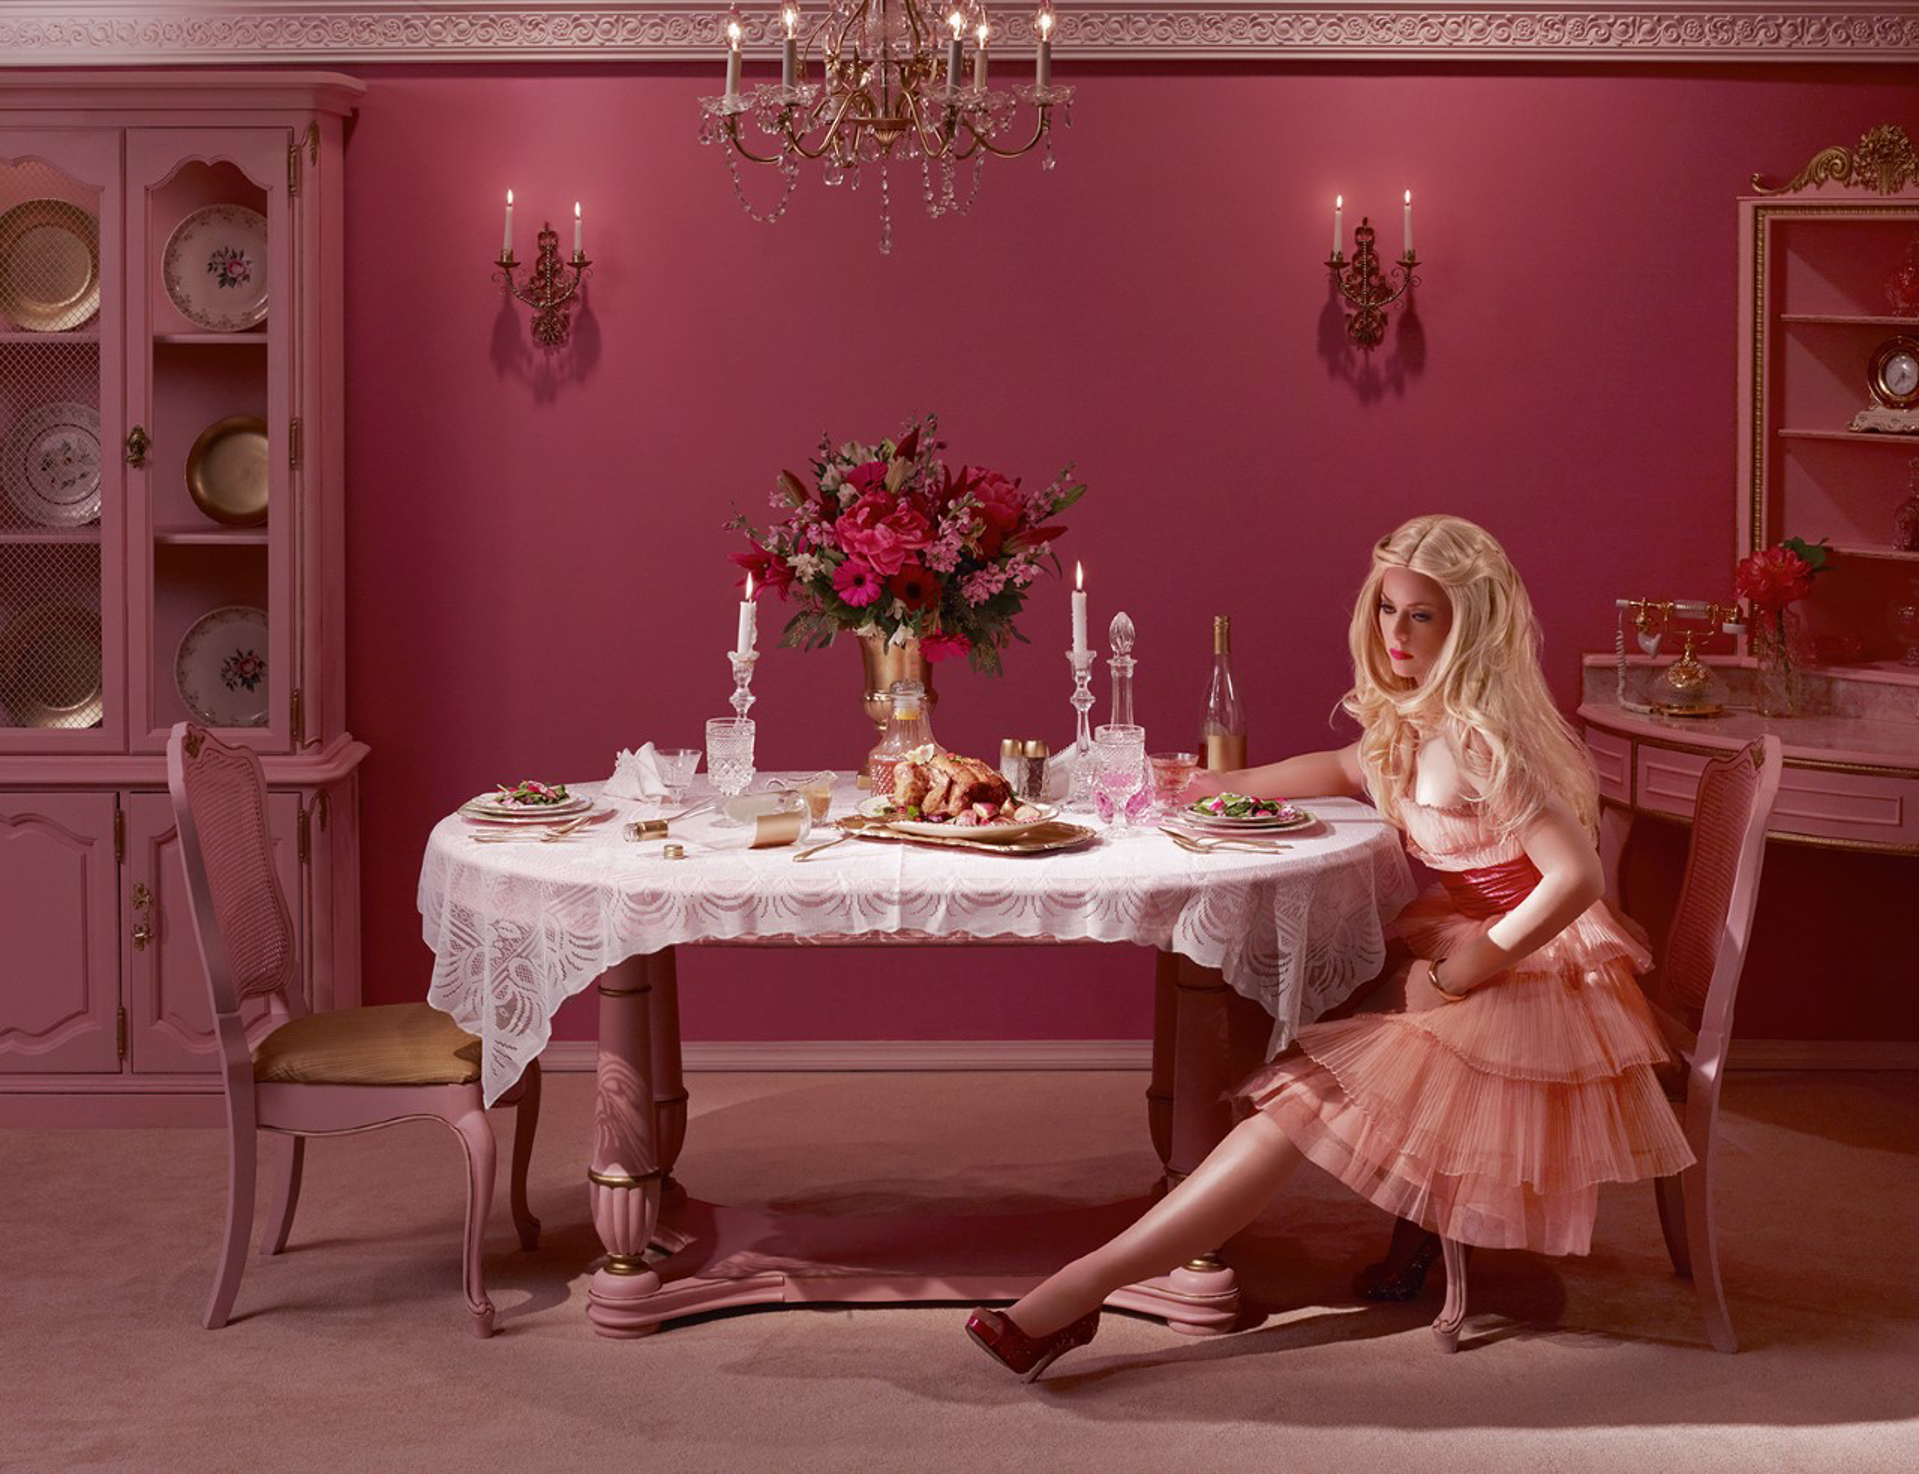 Dining Alone  by Dina Goldstein